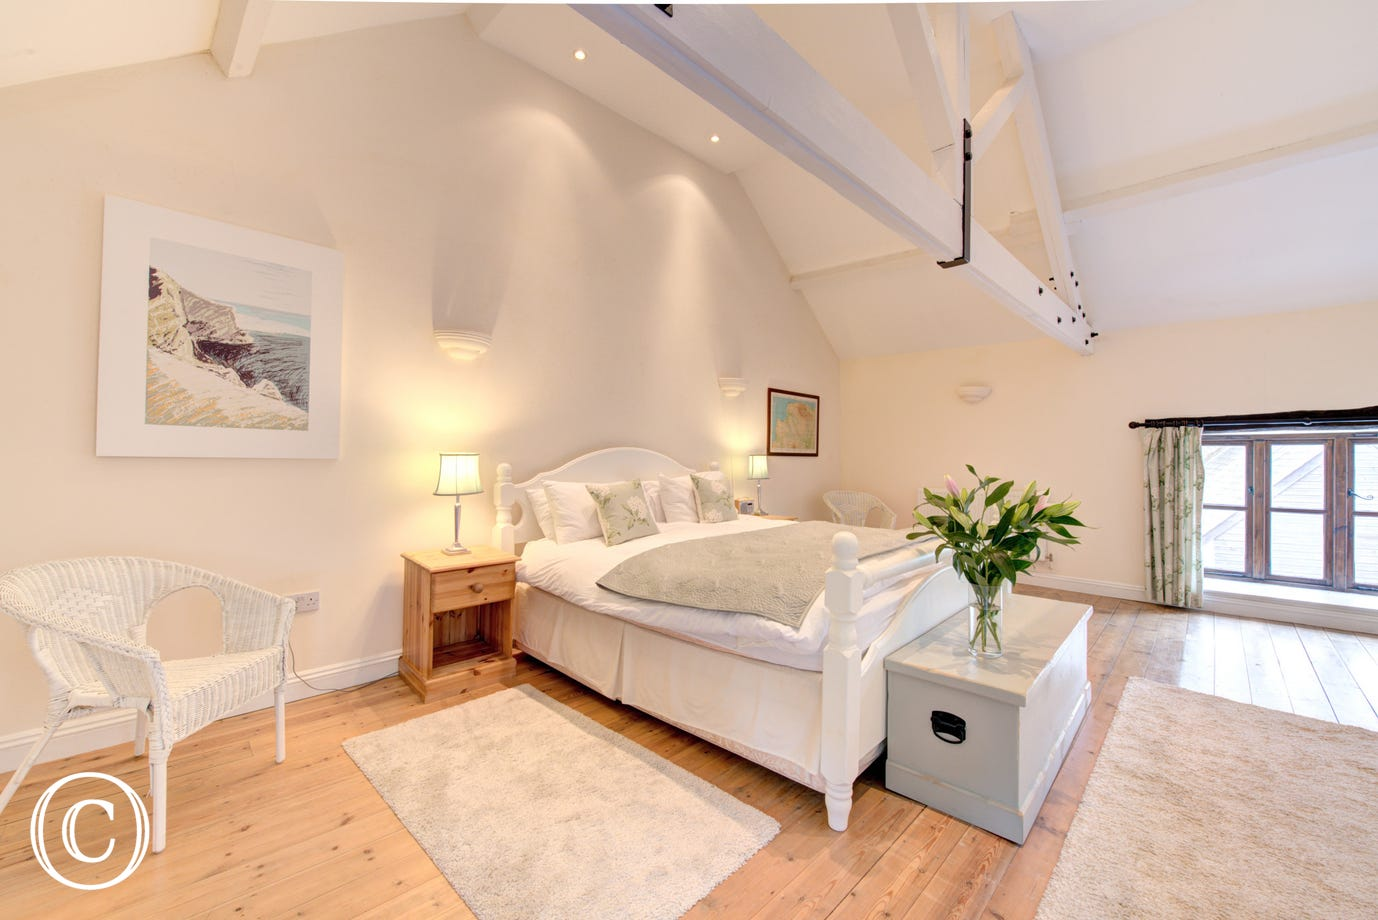 Beautifully decorated master bedroom with superking